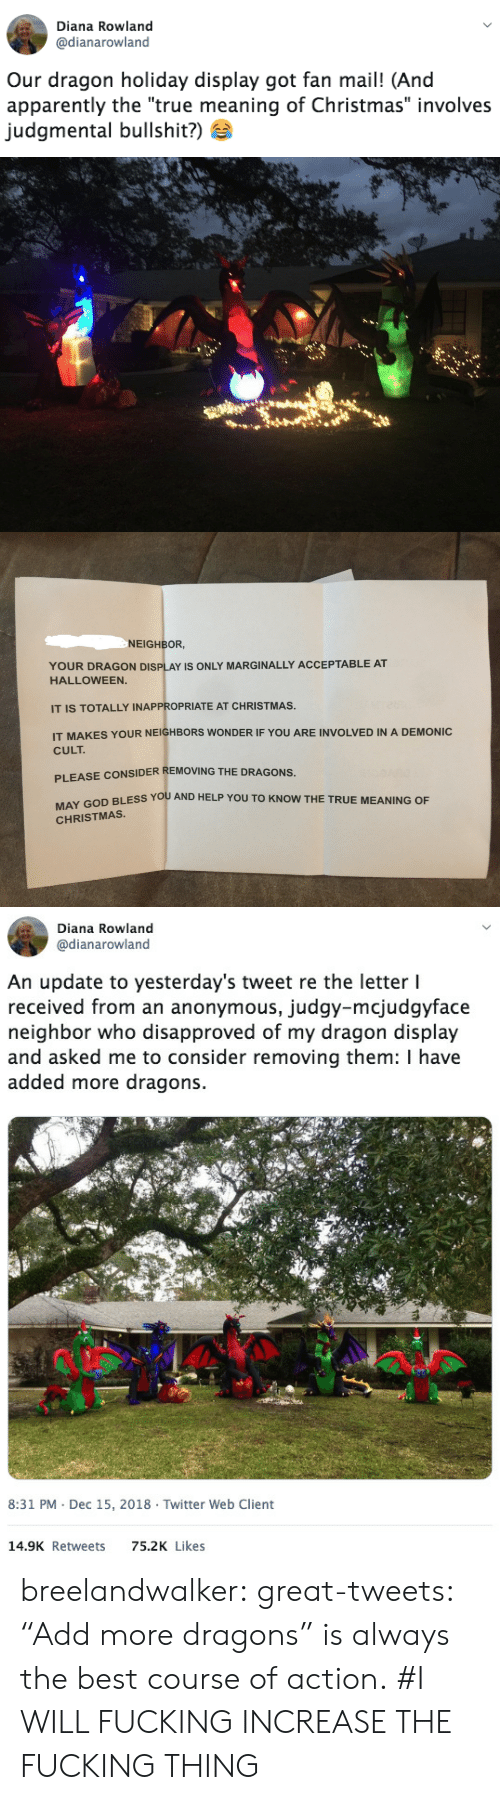 "Tweets: Diana Rowland  @dianarowland  Our dragon holiday display got fan mail! (And  apparently the ""true meaning of Christmas"" involves  Judgmental bullshit?)   NEIGHBOR  YOUR DRAGON DISPLAY IS ONLY MARGINALLY ACCEPTABLE AT  HALLOWEEN.  IT IS TOTALLY INAPPROPRIATE AT CHRISTMAS.  IT MAKES YOUR NEIGHBORS WONDER IF YOU ARE INVOLVED IN A DEMONIC  CULT  PLEASE CONSIDER REMOVING THE DRAGONS.  GO BLESS YOU AND HELP YOU TO KNOW THE TRUE MEANING OF  CHRISTMAS   Diana Rowland  @dianarowland  An update to yesterday's tweet re the letter l  received from an anonymous, judgy-mciudgvface  neighbor who disapproved of my dragon display  and asked me to consider removing them: I have  added more dragons.  8:31 PM Dec 15, 2018 Twitter Web Client  14.9K Retweets  75.2K Likes breelandwalker: great-tweets: ""Add more dragons"" is always the best course of action. #I WILL FUCKING INCREASE THE FUCKING THING"